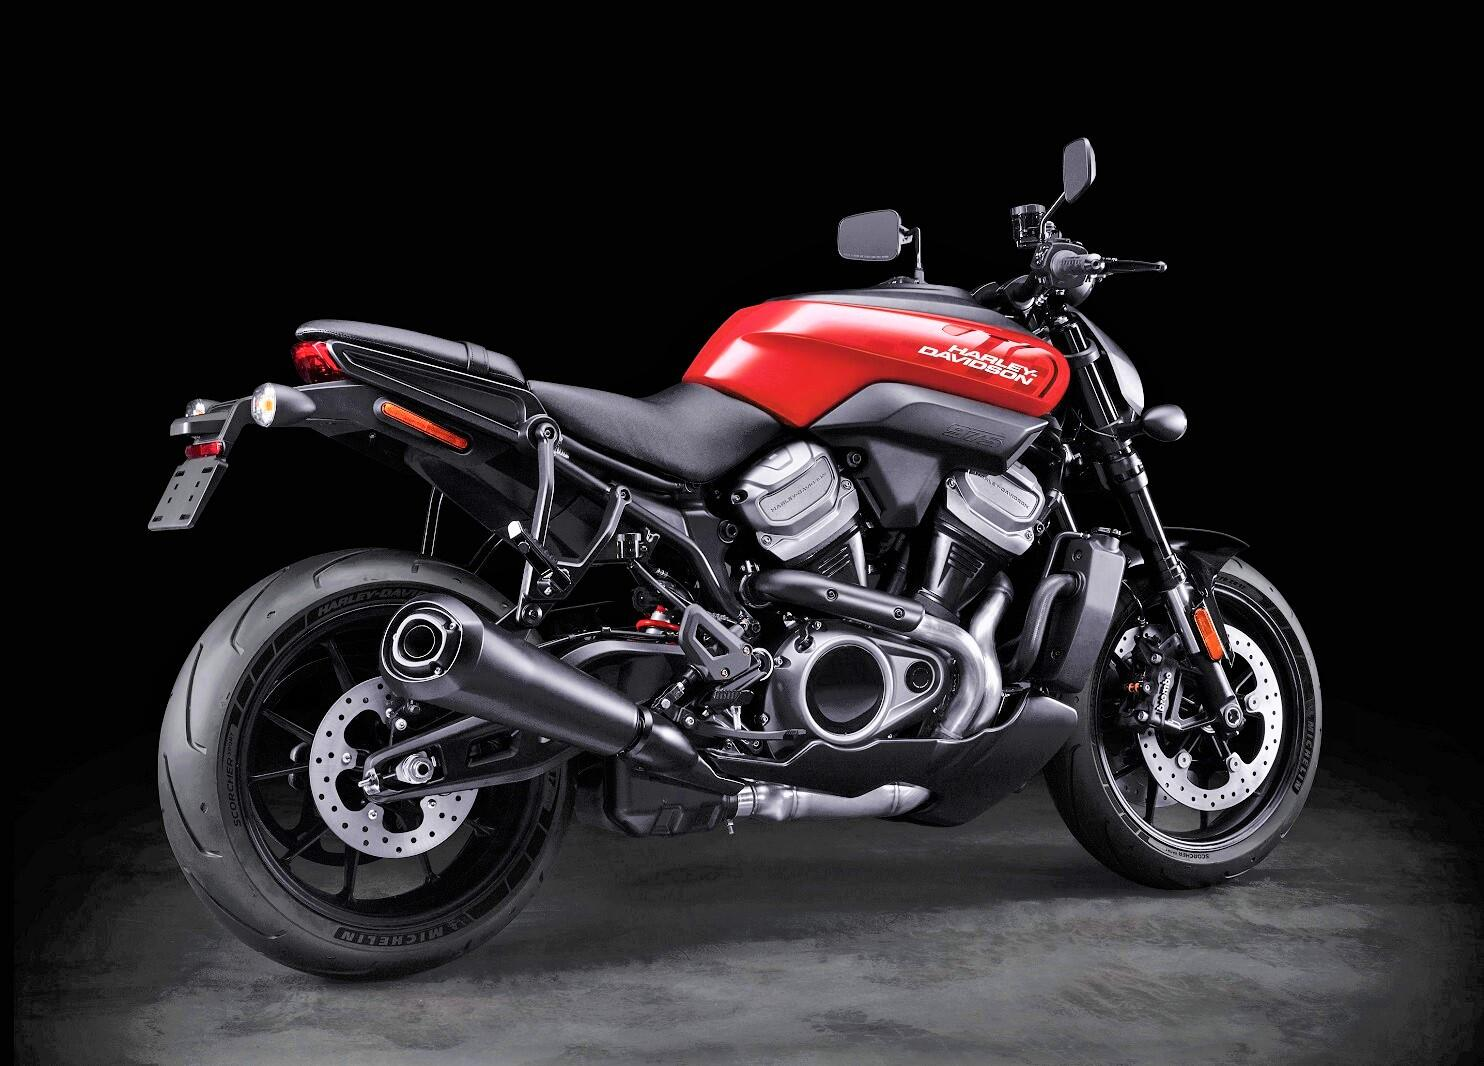 <p>The Bronx was looking like the sportiest Harley the would had seen since Buell, but now it's been delayed indefinitely.</p>